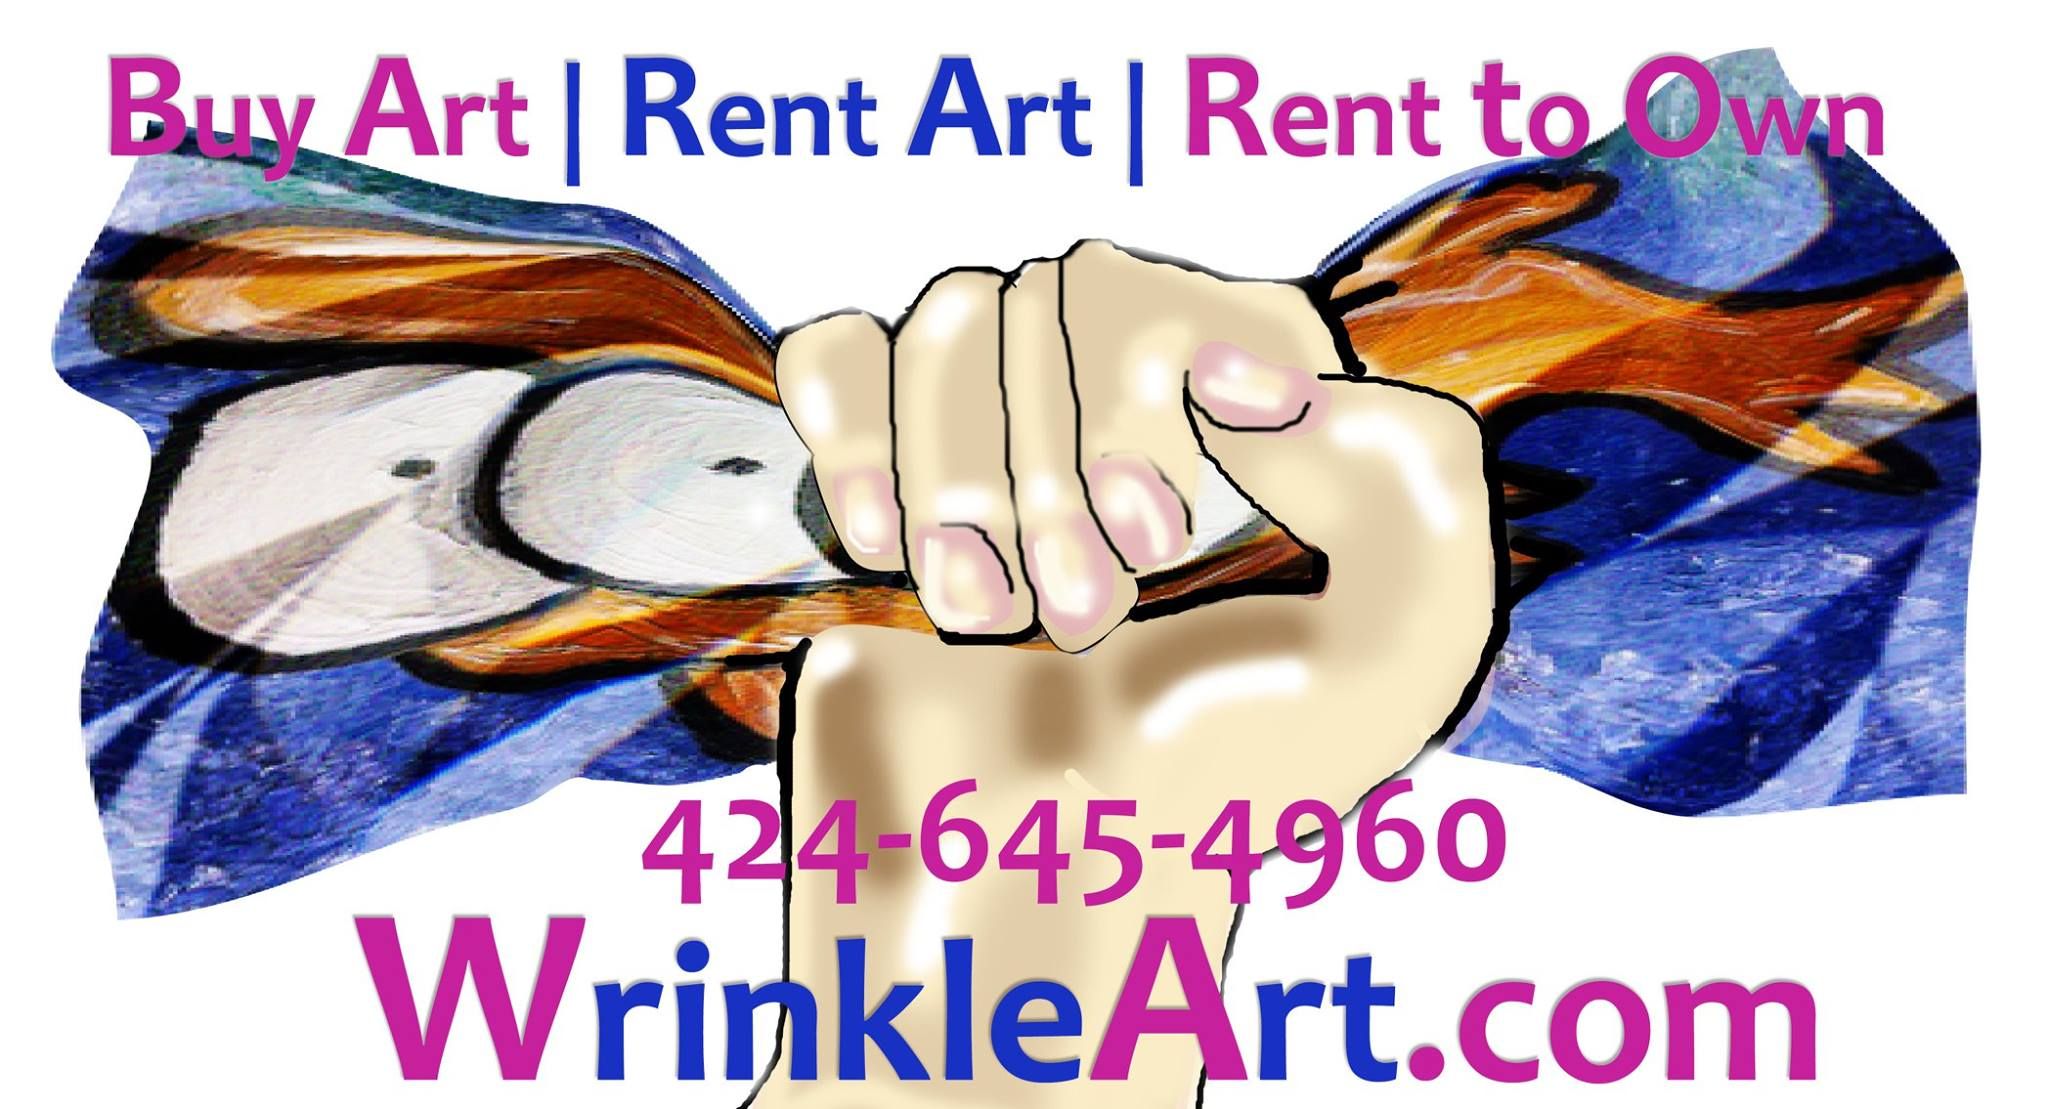 Shop Wrinkle Art online